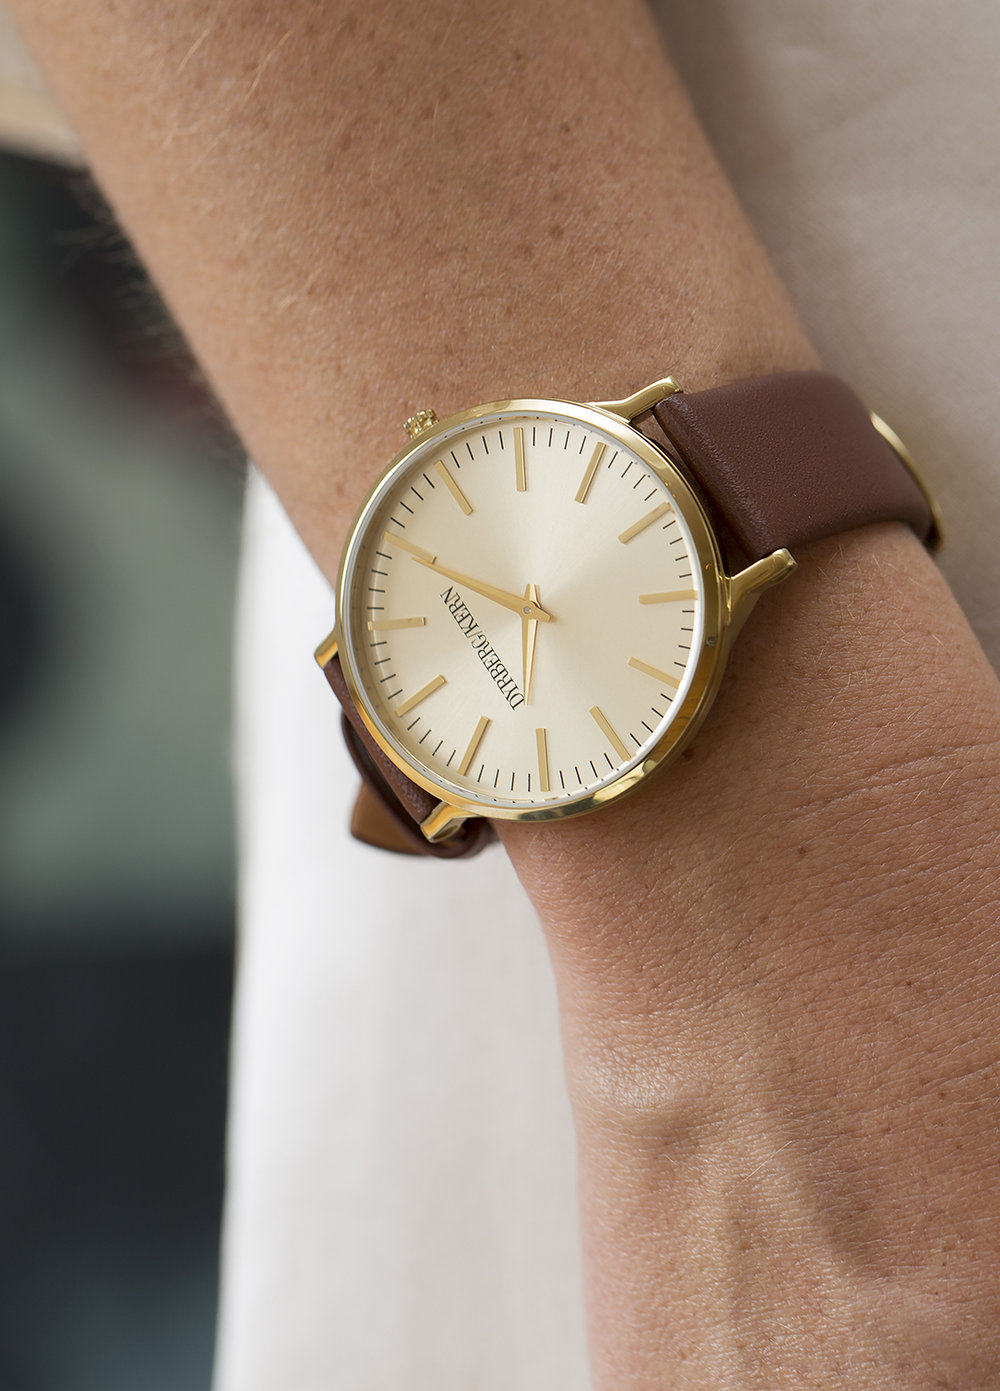 Dyrberg/Kern watch from Shine